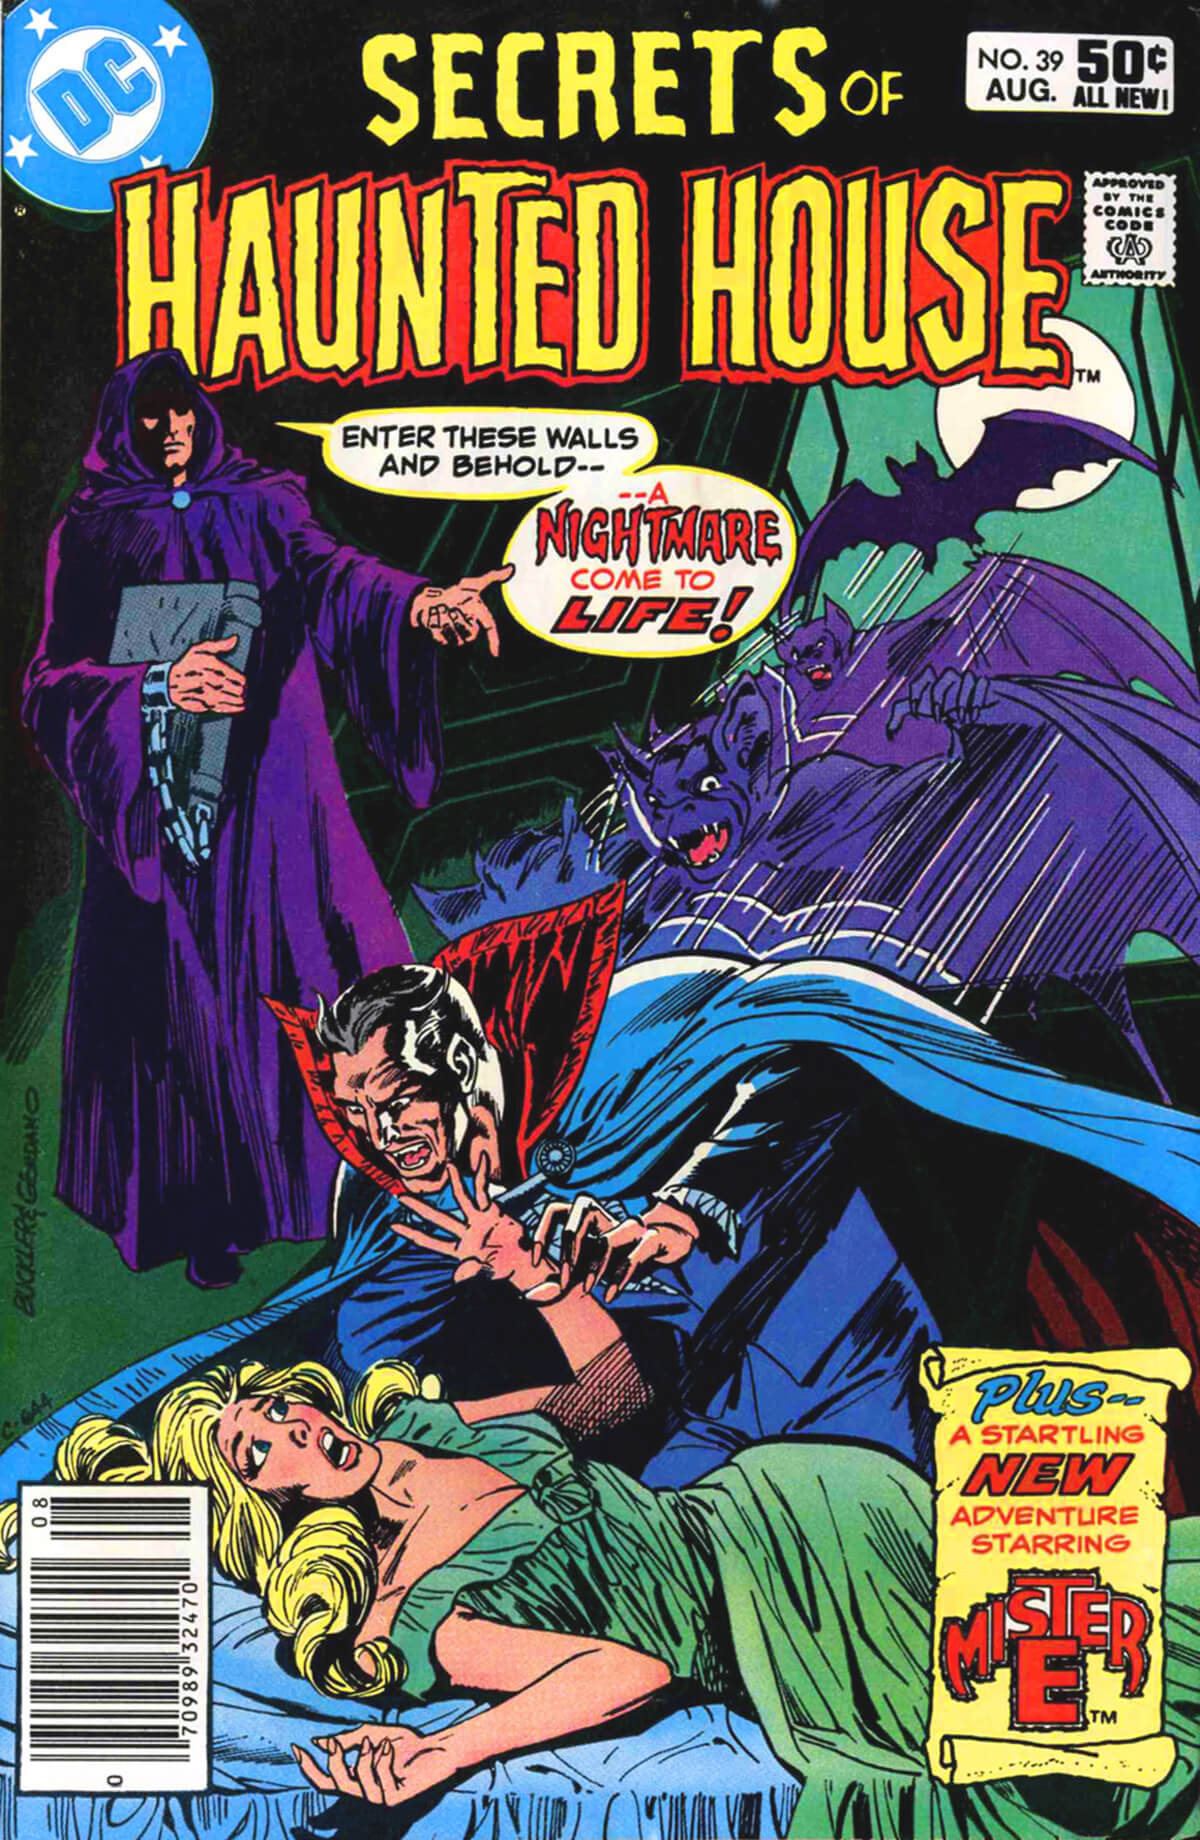 Secrets of Haunted House 39 Cover by Rich Buckler and Dick Giordano